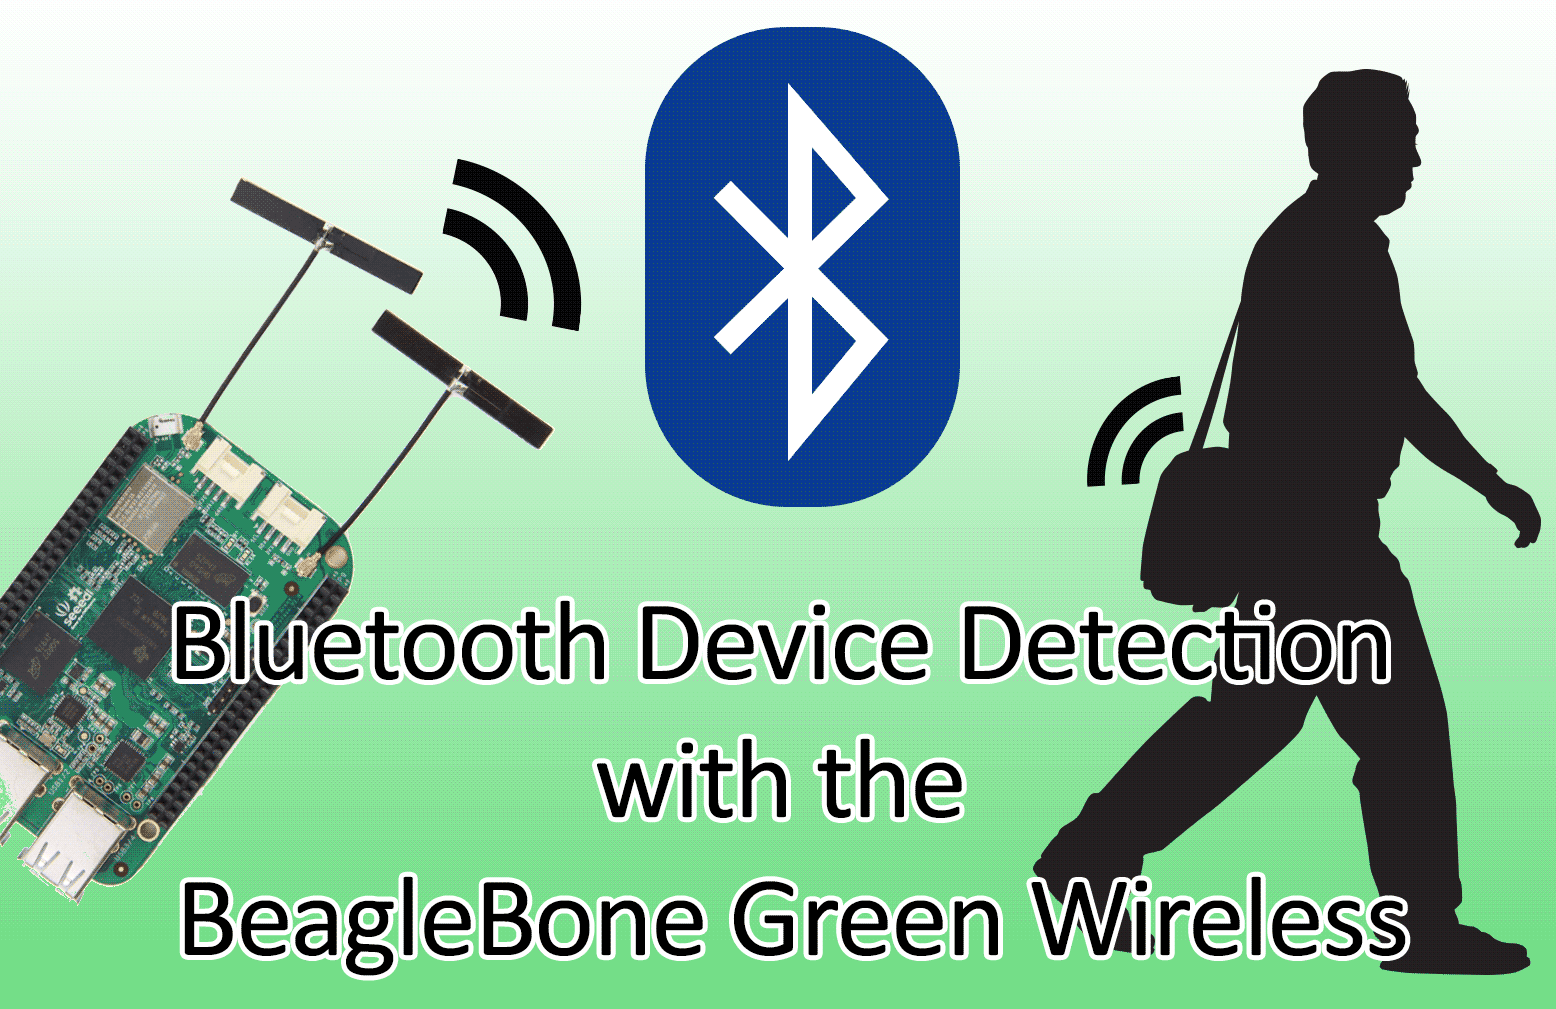 Bluetooth Device Detection with the BeagleBone Green Wireless